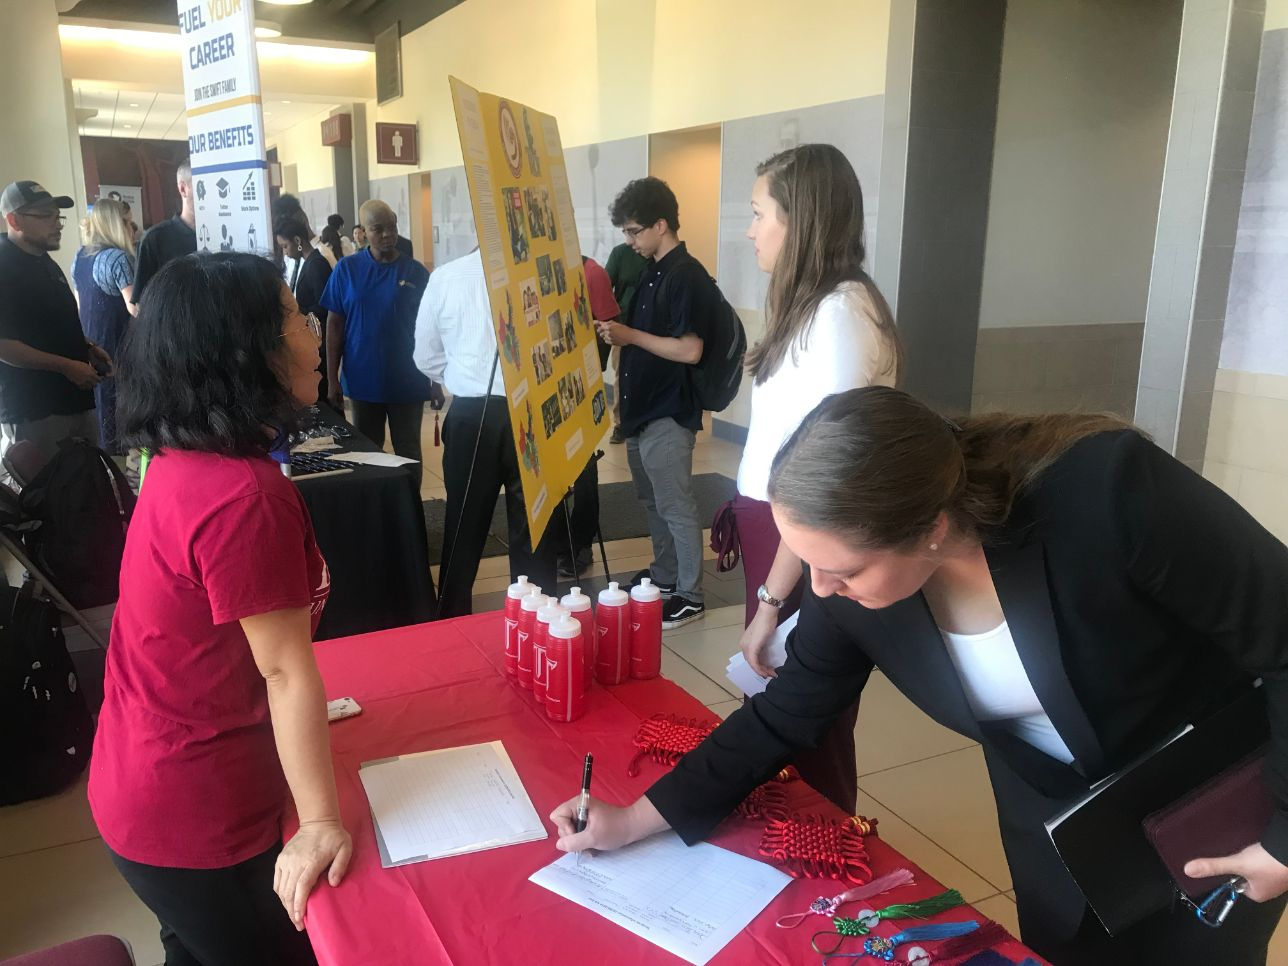 Students sign up and leave contact information for the Confucius Institute.